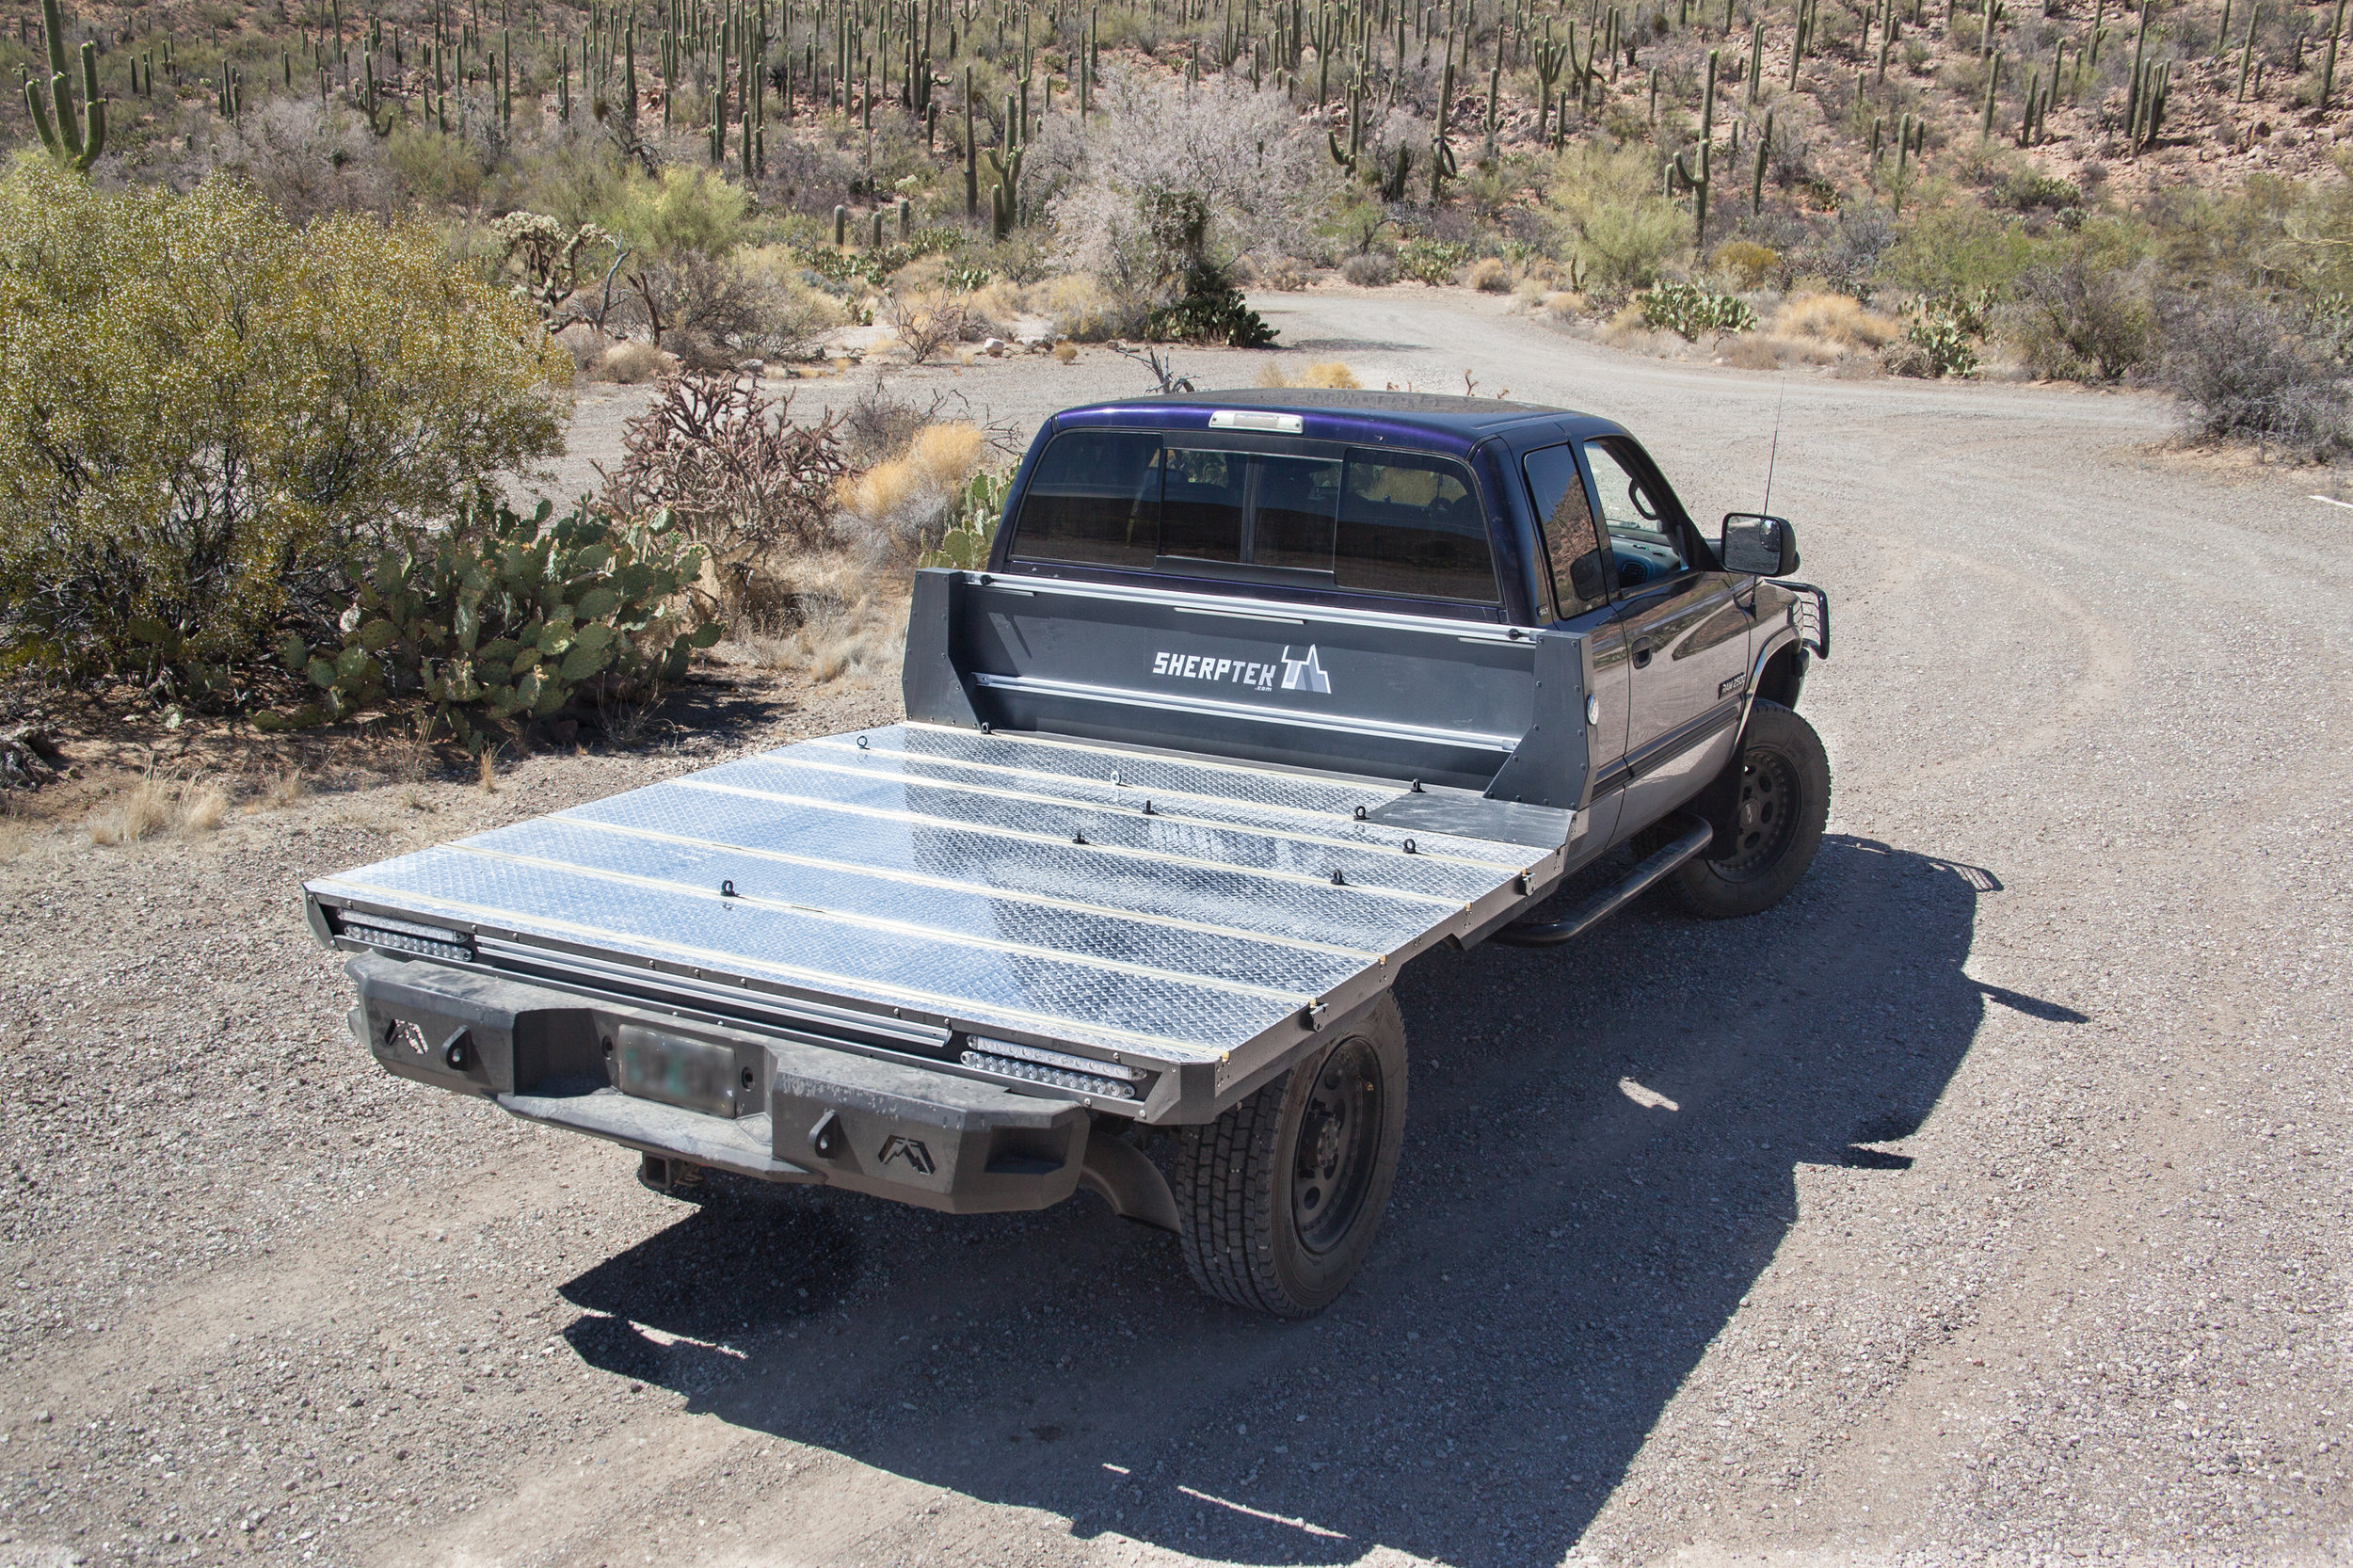 Modular multifunctional truck bed replacement system